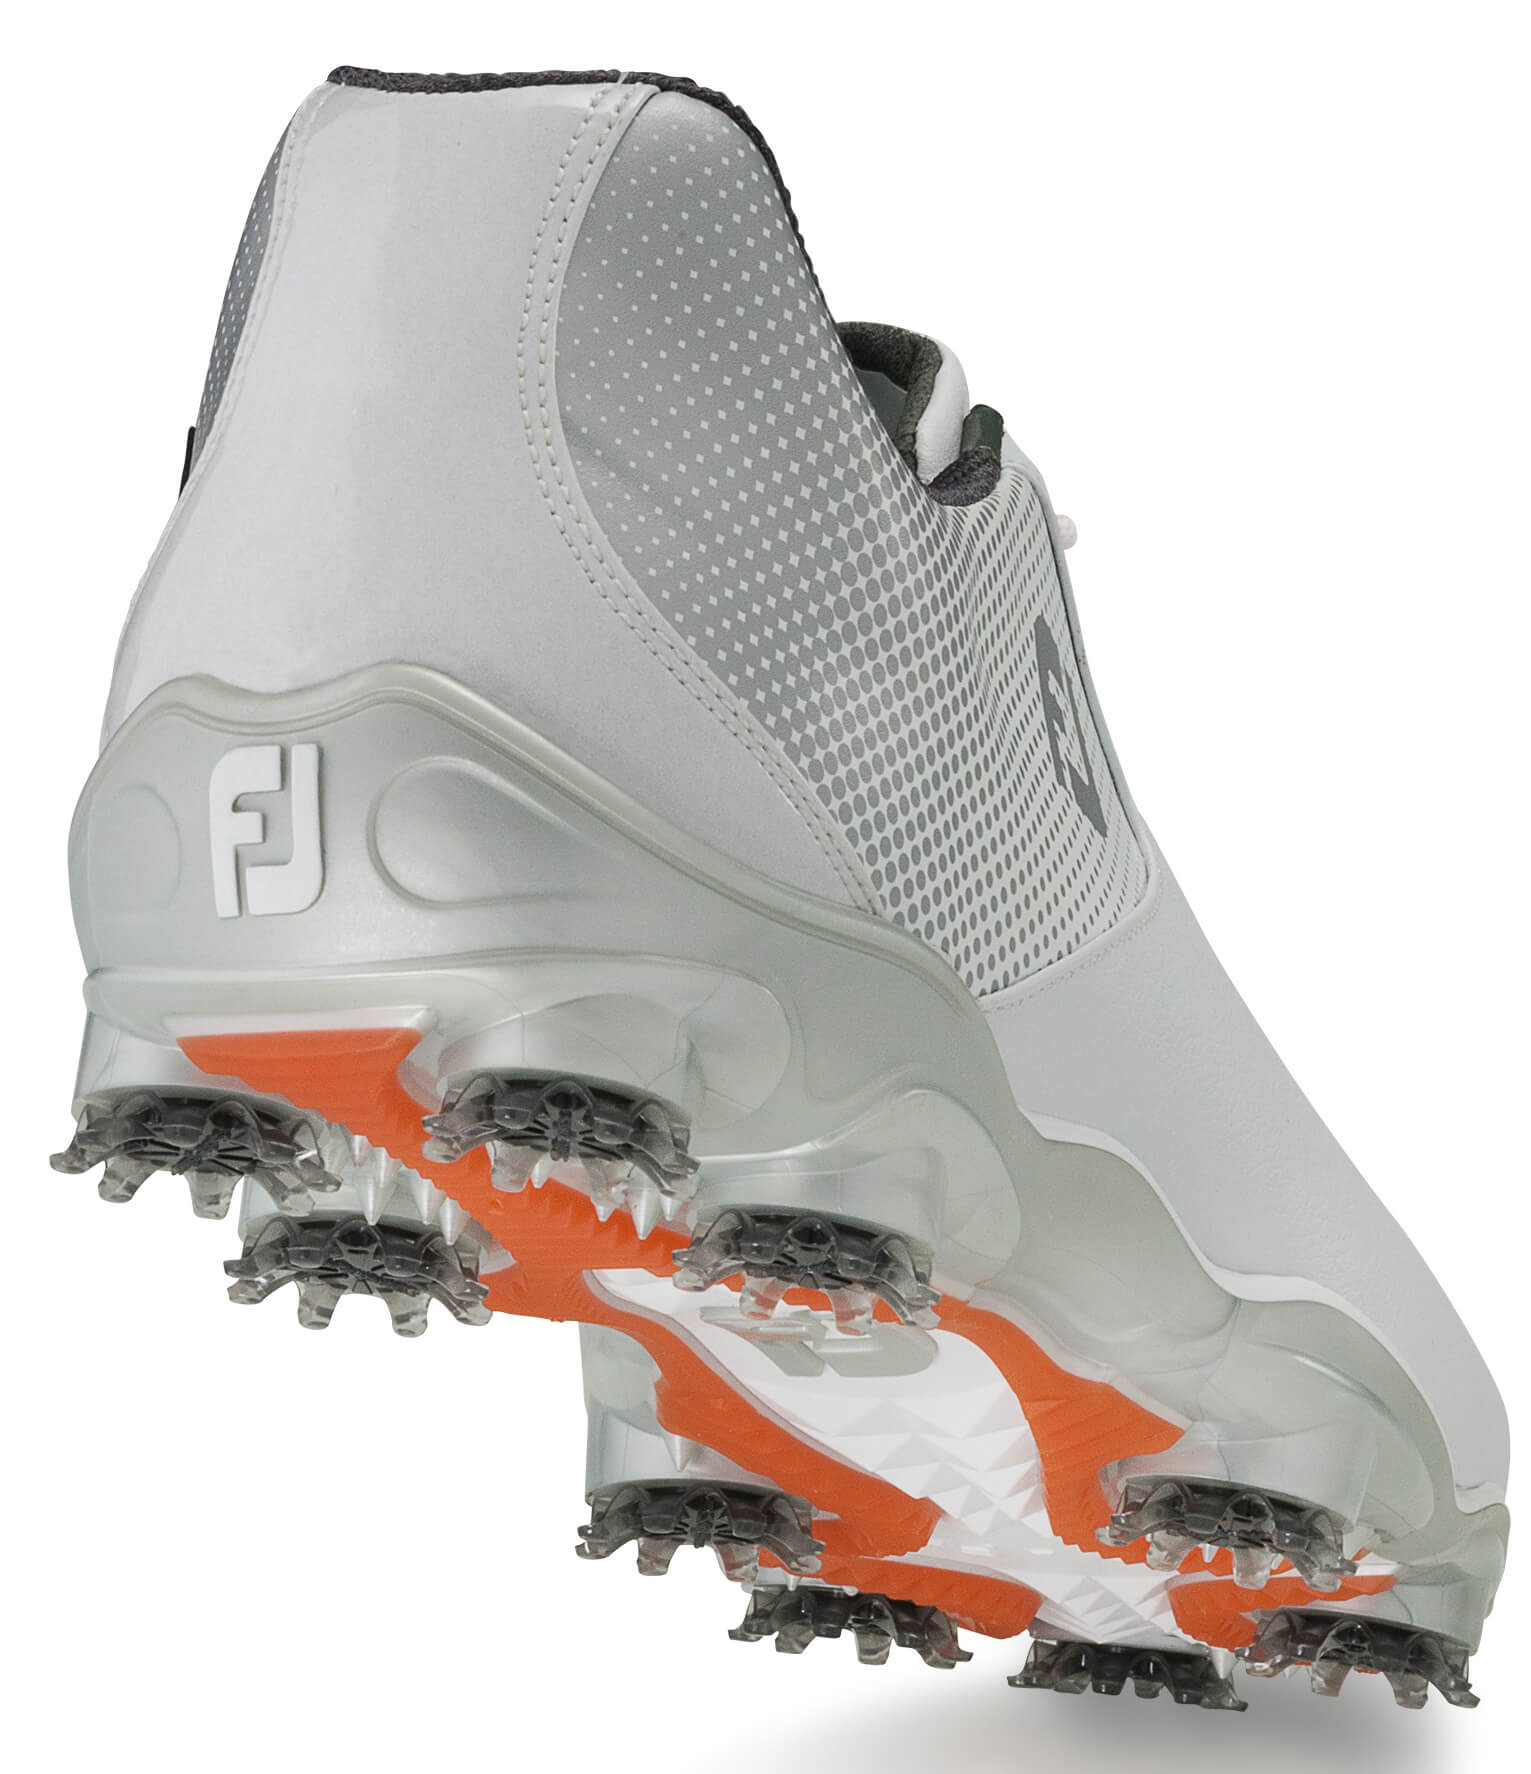 FootJoy-DNA-Helix-Golf-Shoes-Leather-Waterproof-Men-039-s-New-Choose-Color-amp-Size thumbnail 12